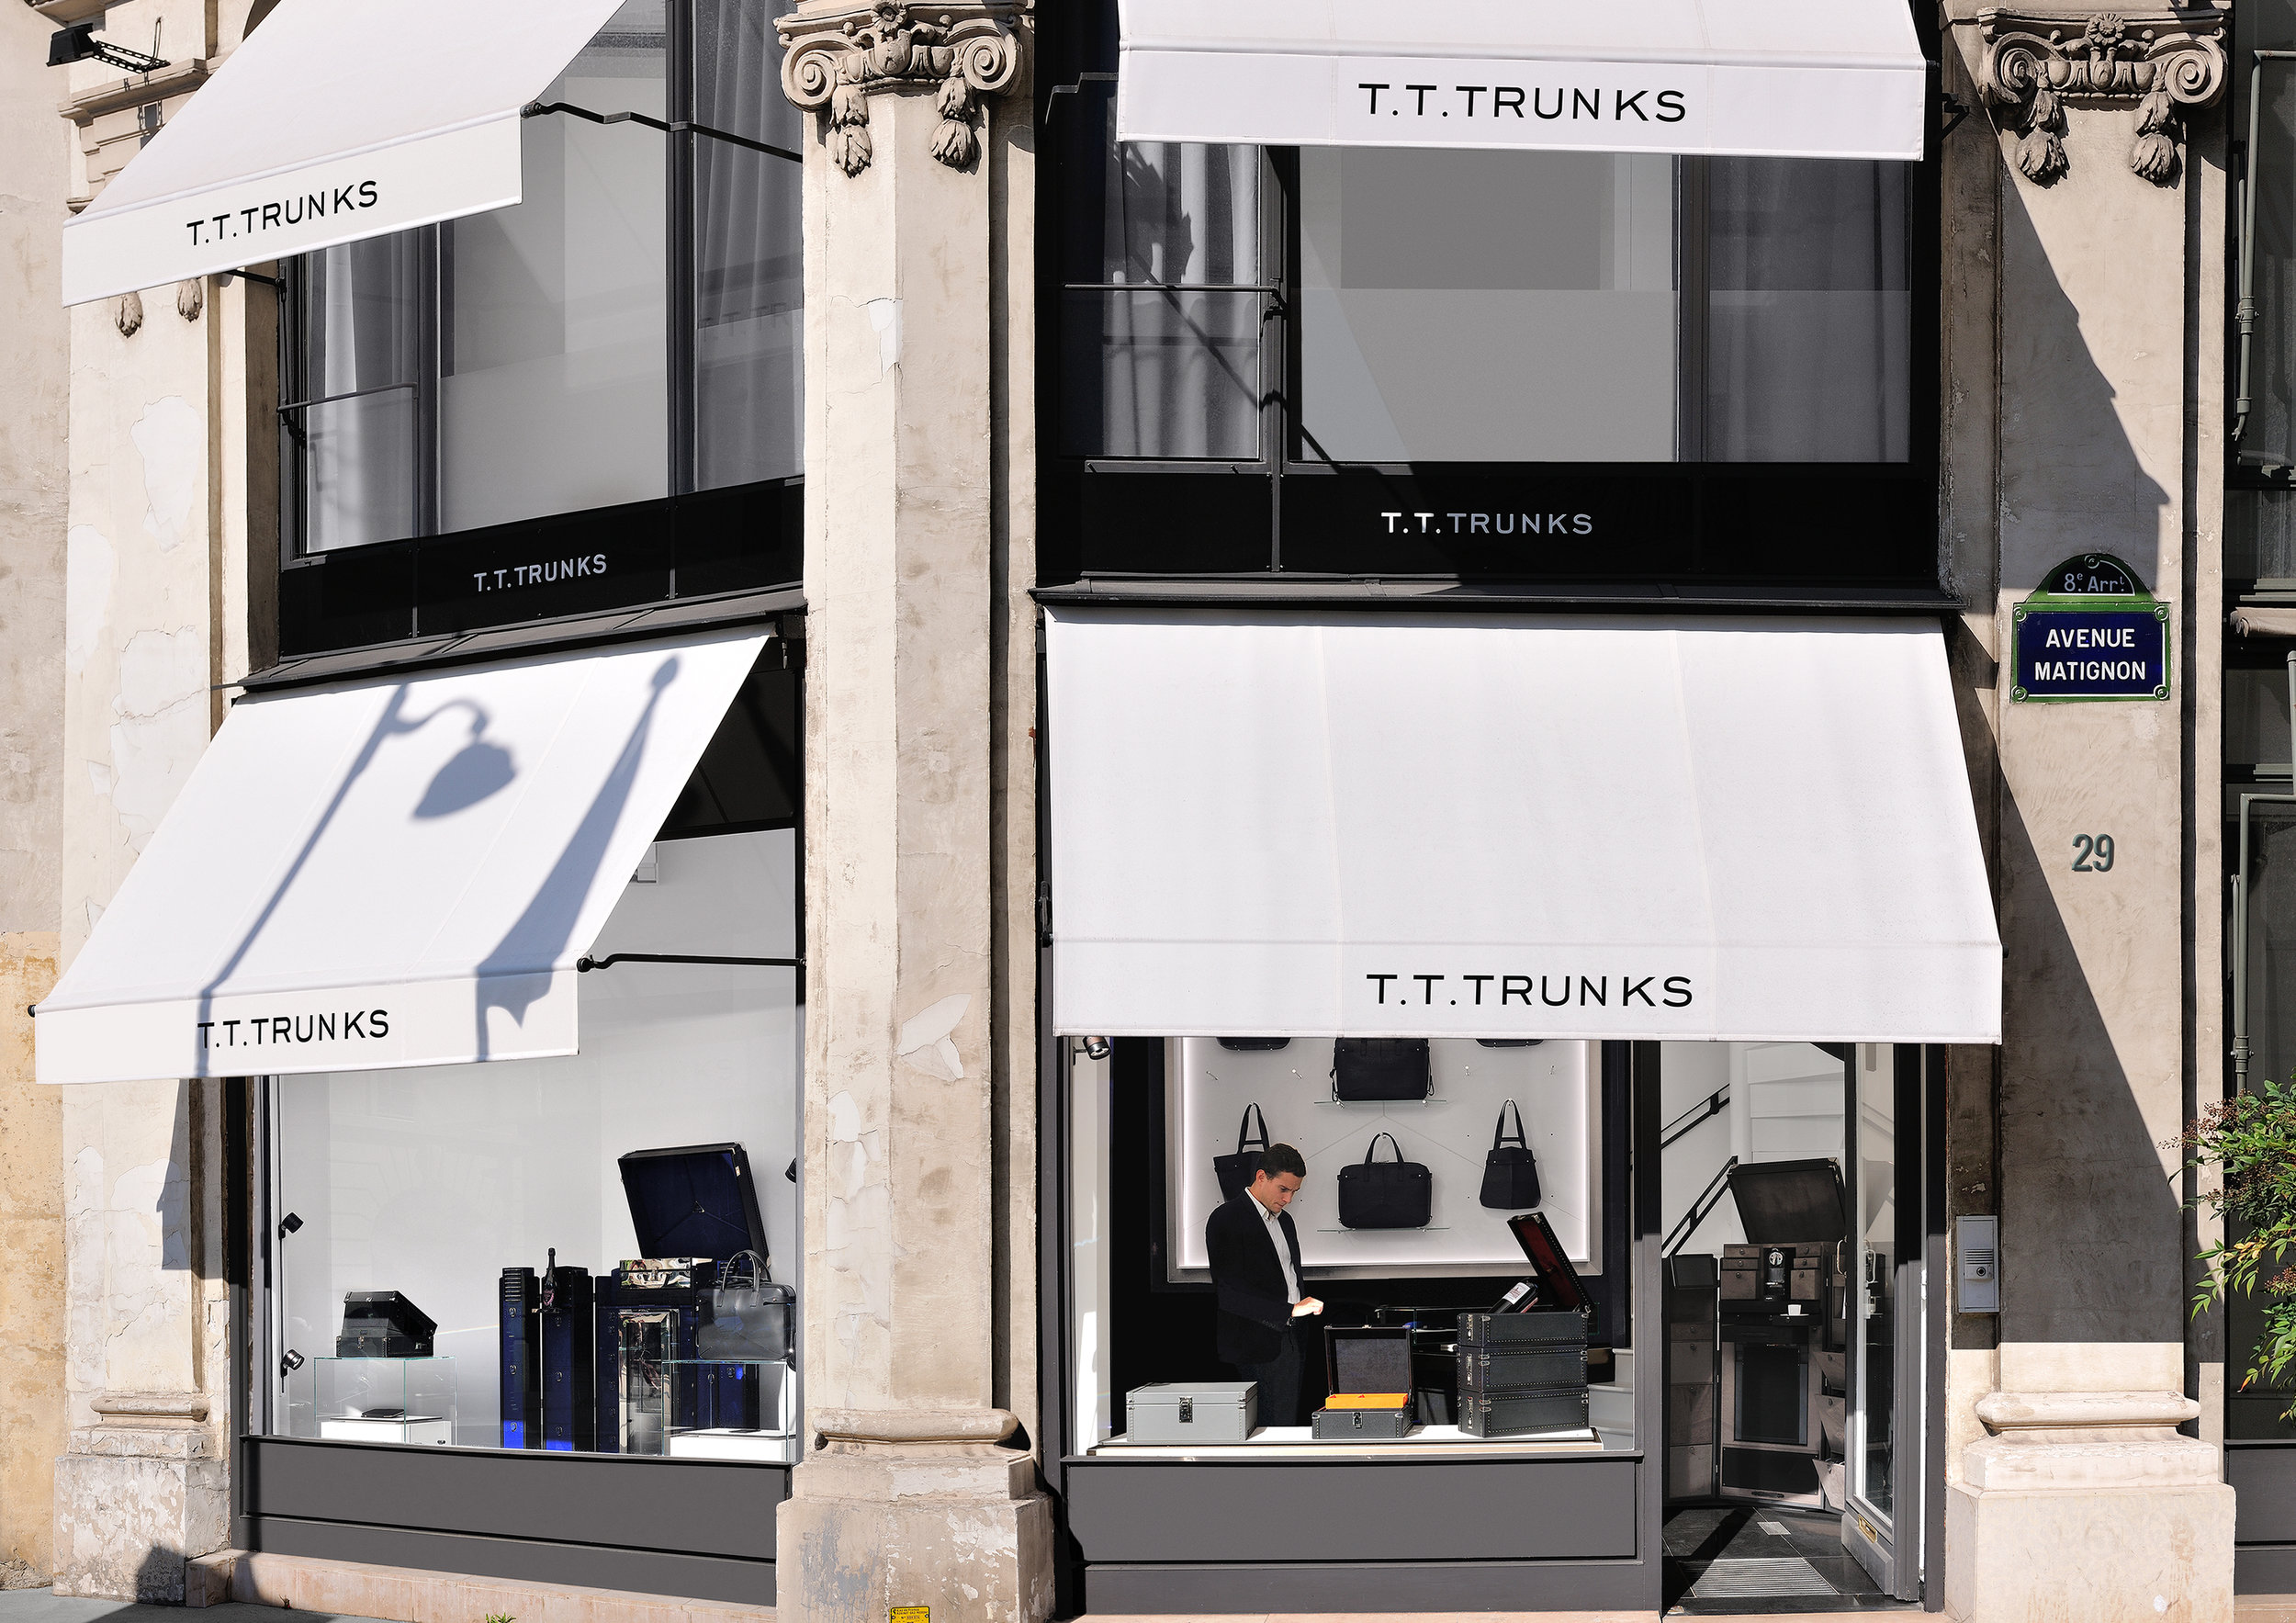 """TTTRUNKS   PARIS, 2010.THE CRADLE OF EXCELLENCE IN FRENCH CREATION, AND SITE OF ITS FUTURE, BECAME THE BIRTHPLACE OF T.T.TRUNKS.  A name that rings, that resounds, for a design house with deep French roots and a global vision. A logo like a talisman that draws its power from the """"House of 3 Rivets"""". The rivets symbolize sharp imagination and unrivalled expertise in creation.  T.T.TRUNKS spirit is NOMADE NO LIMIT... and so you are."""